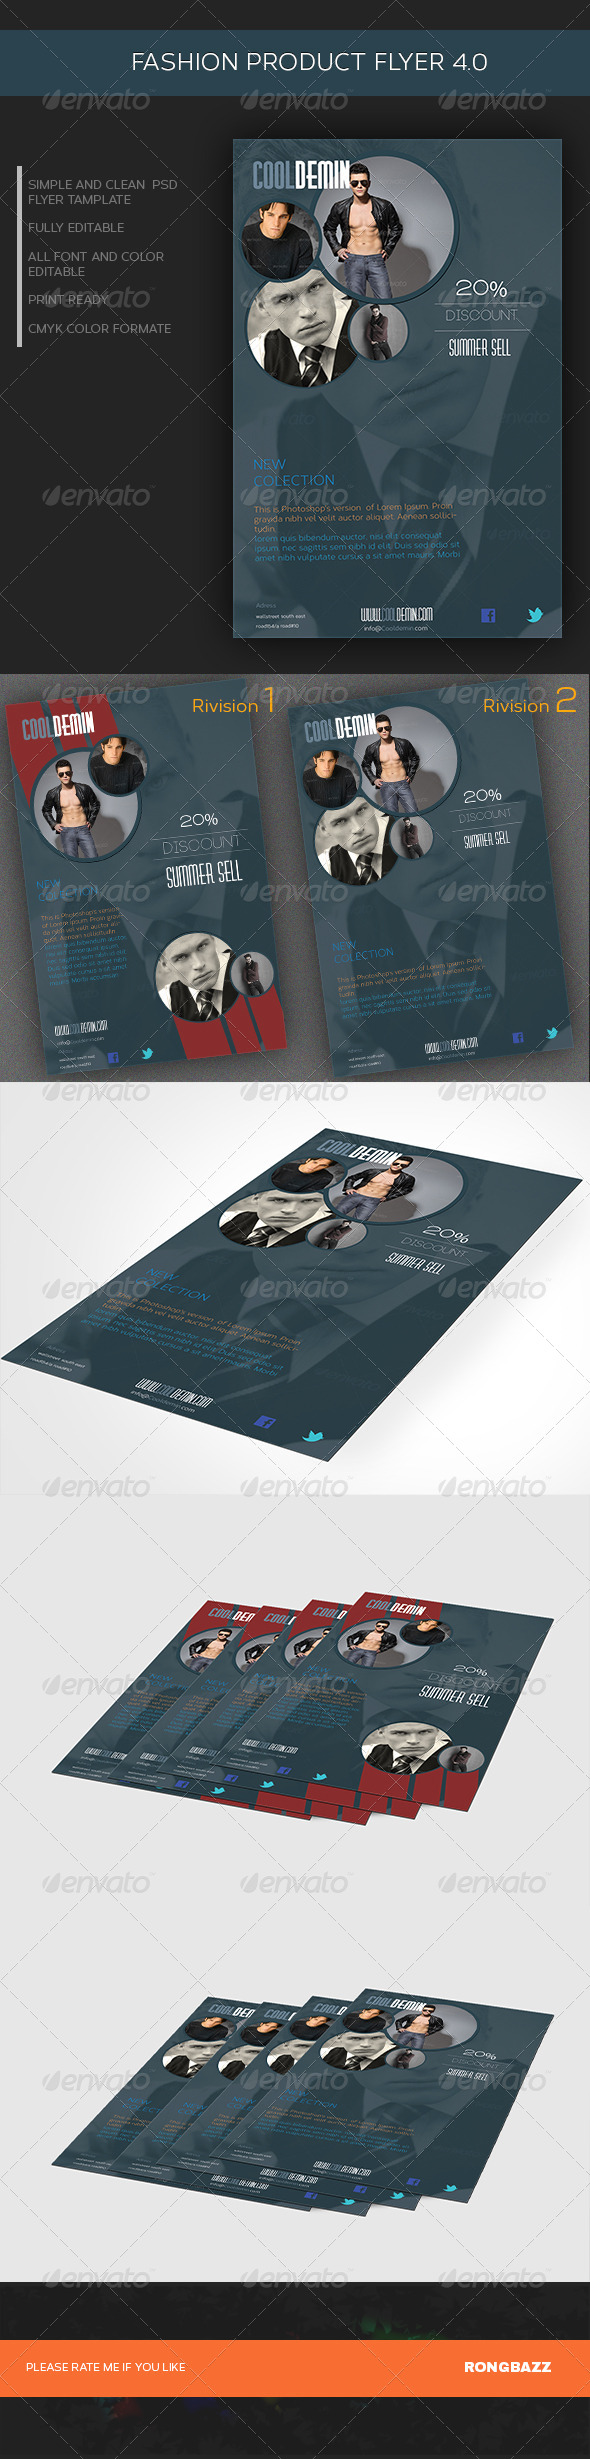 GraphicRiver Fashion Product Flyer 4.0 6973455